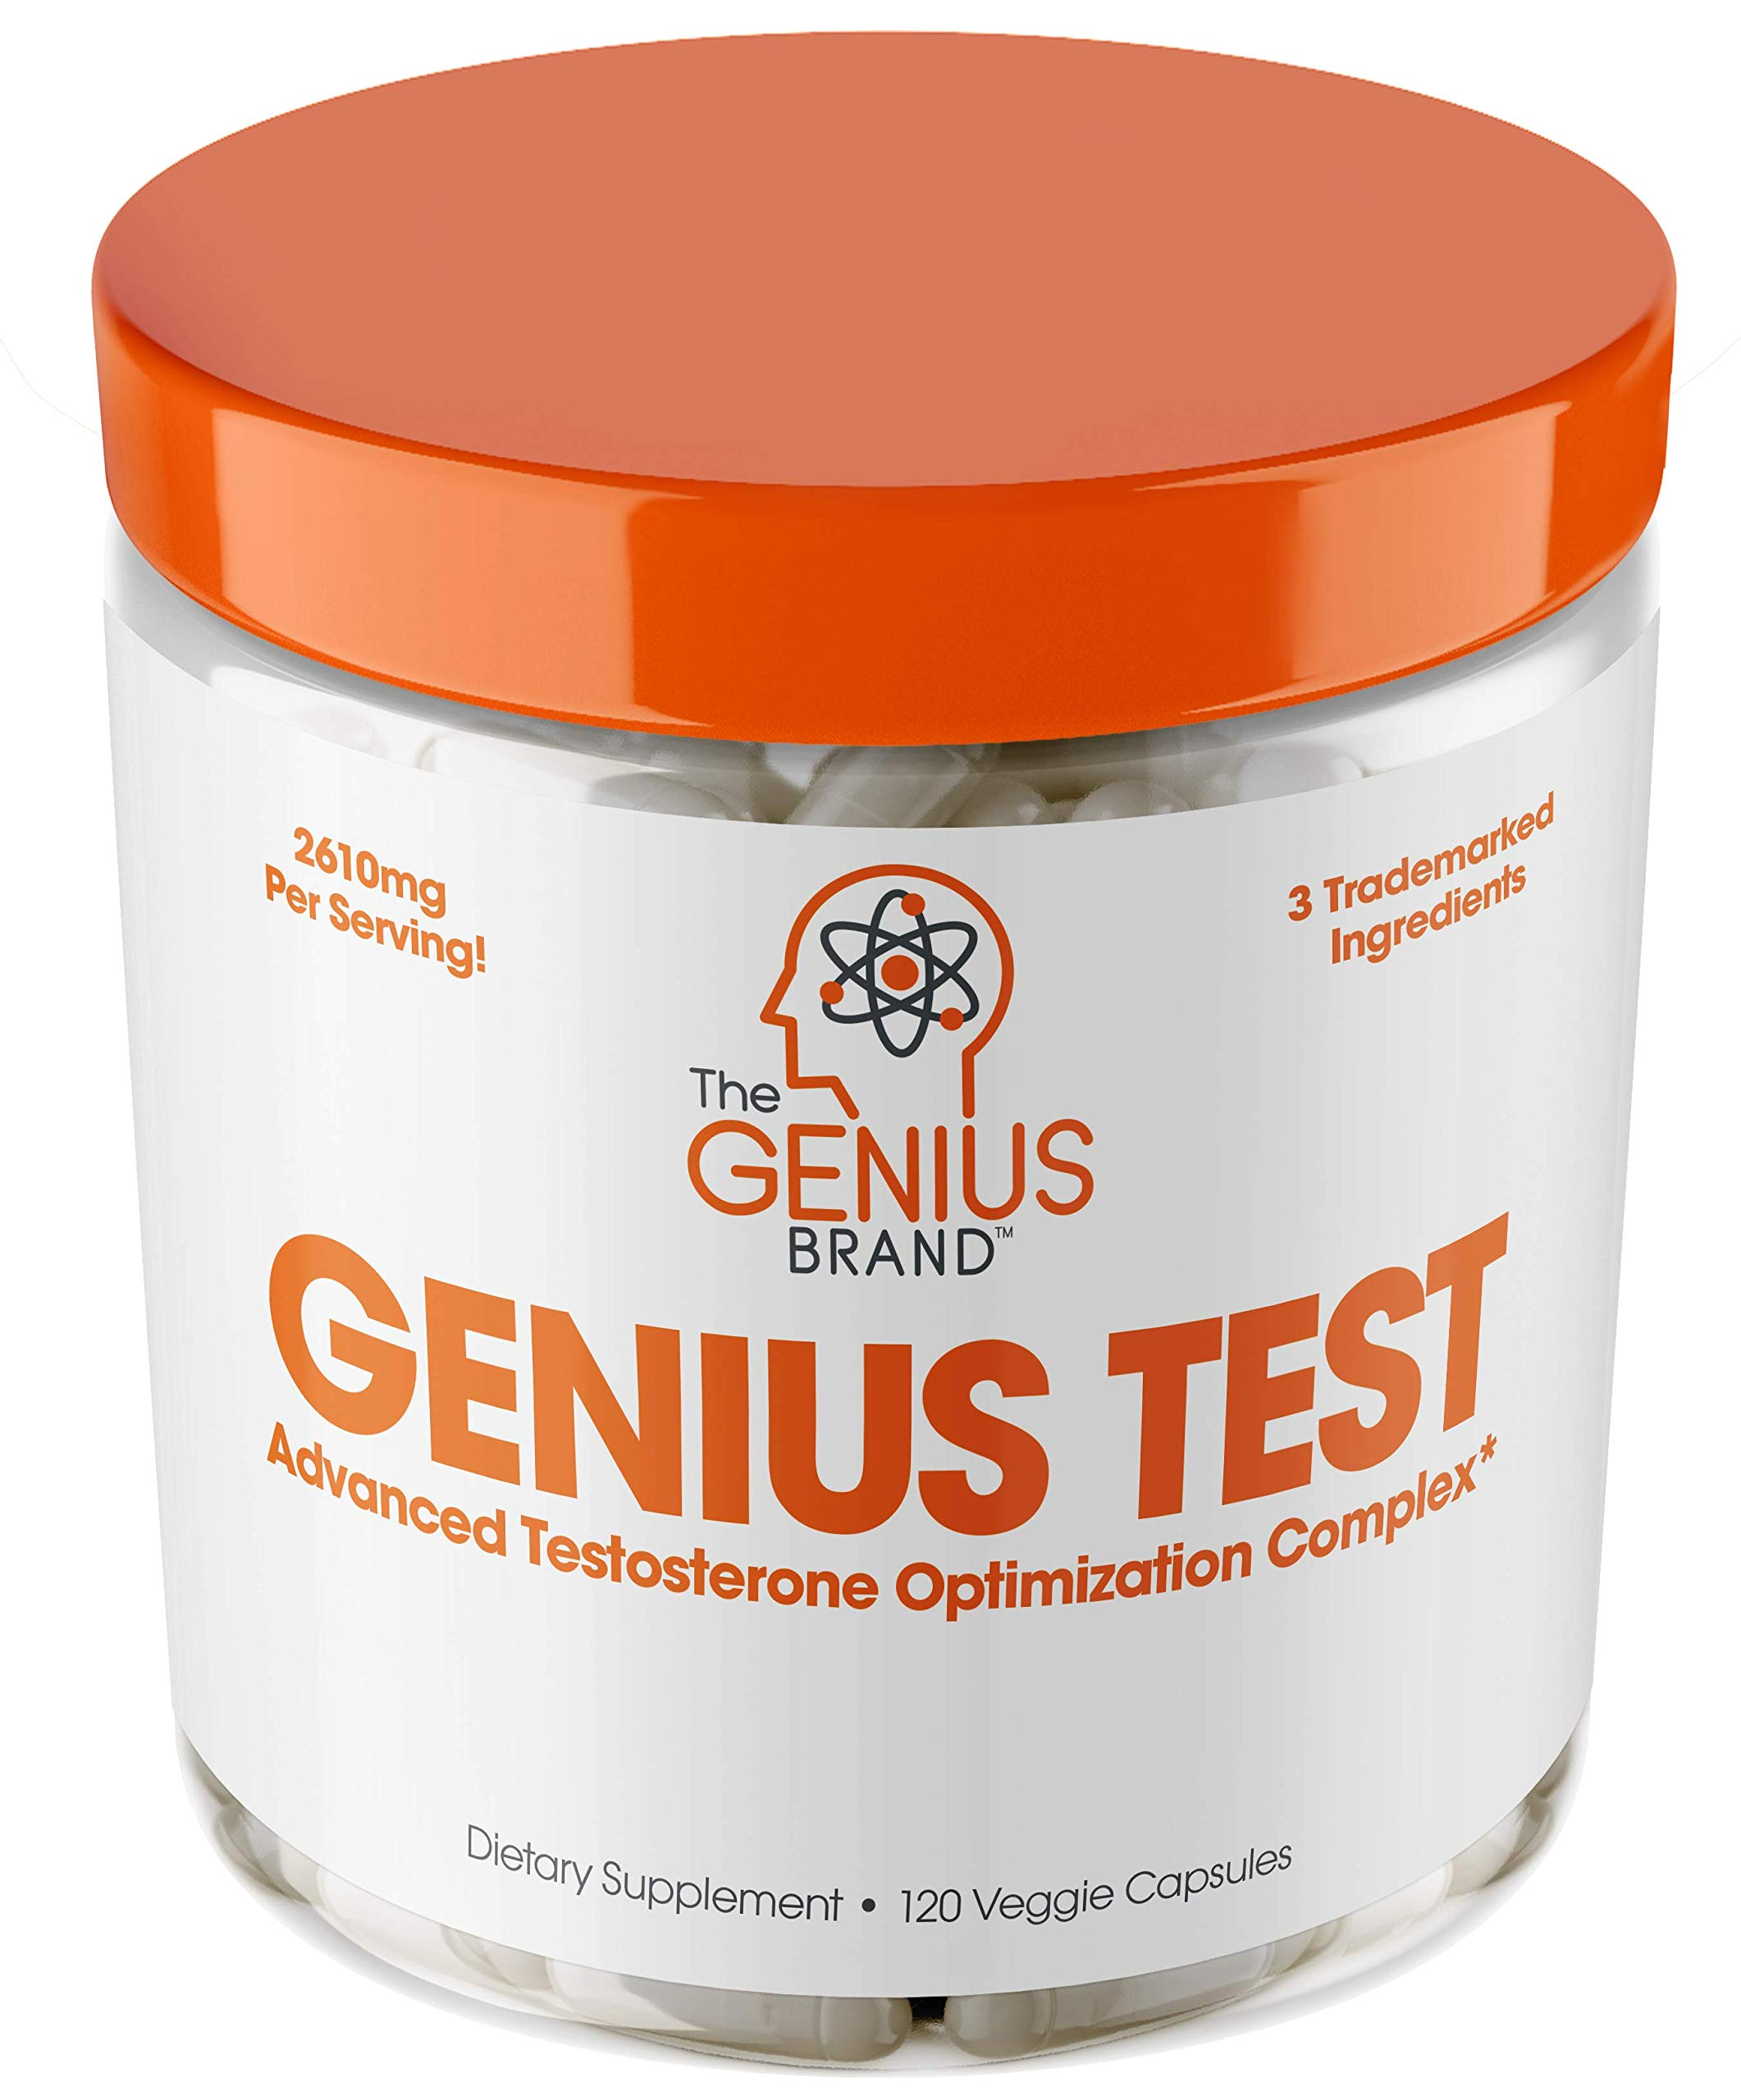 Genius Test - The Smart Testosterone Booster For Men | Natural Energy Supplement, Brain & Libido Support, Fat Loss | Muscle Builder with Ksm-66 Ashwagandha, Shilajit and Tongkat Ali, 120 Veggie Pills by The Genius Brand